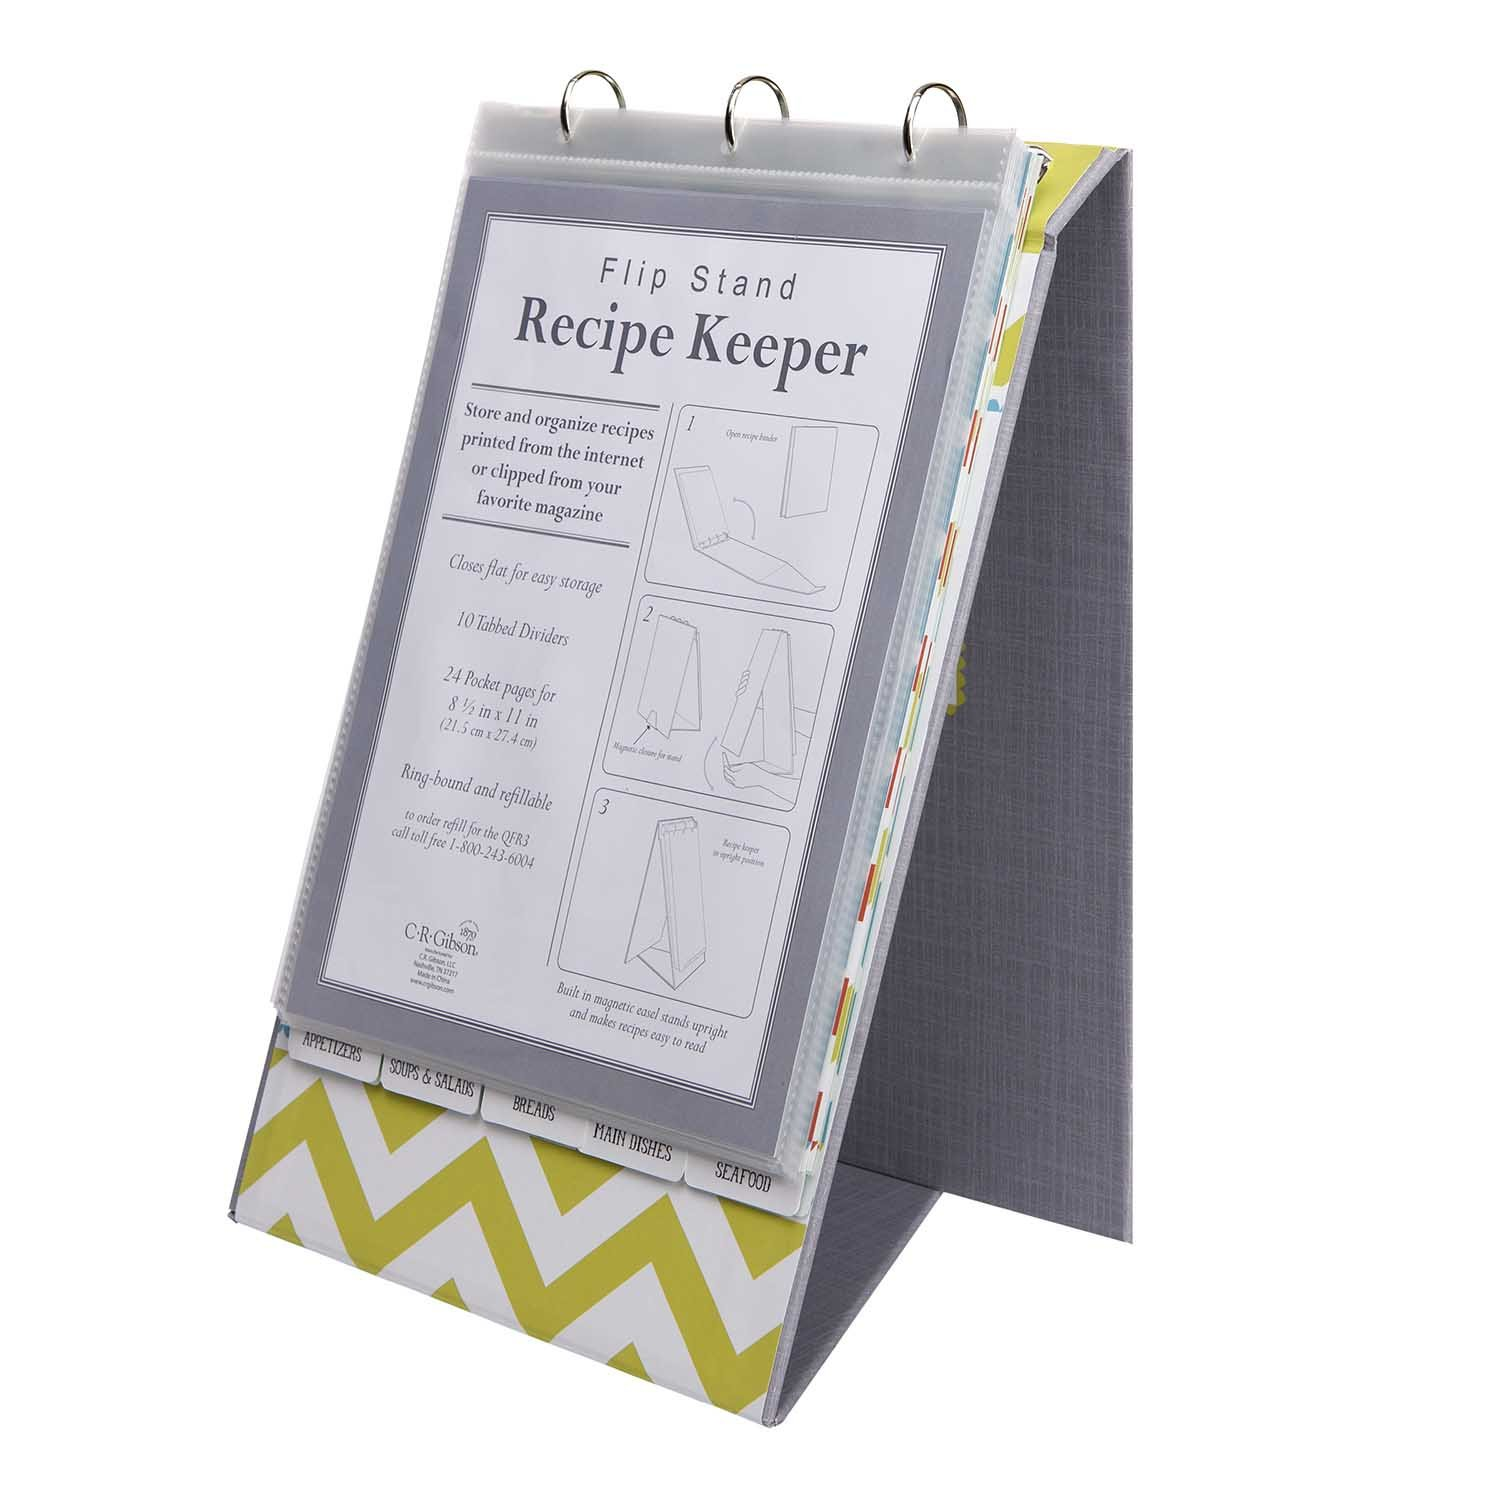 CR Gibson Recipe Keeper Kitchen Gear